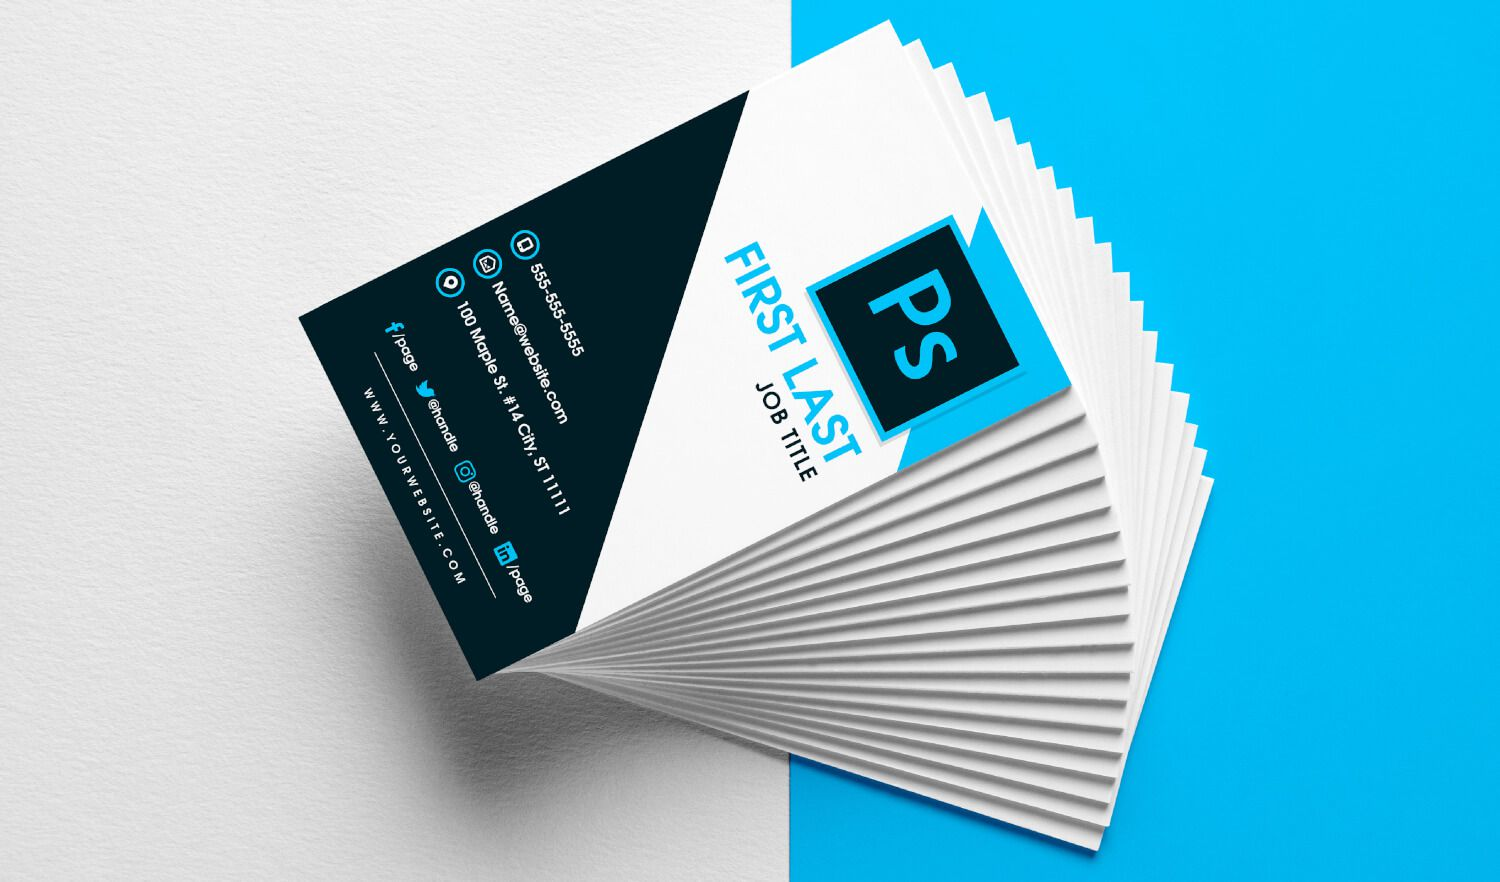 007 Stupendou Free Blank Busines Card Template Photoshop Inspiration  Download PsdFull